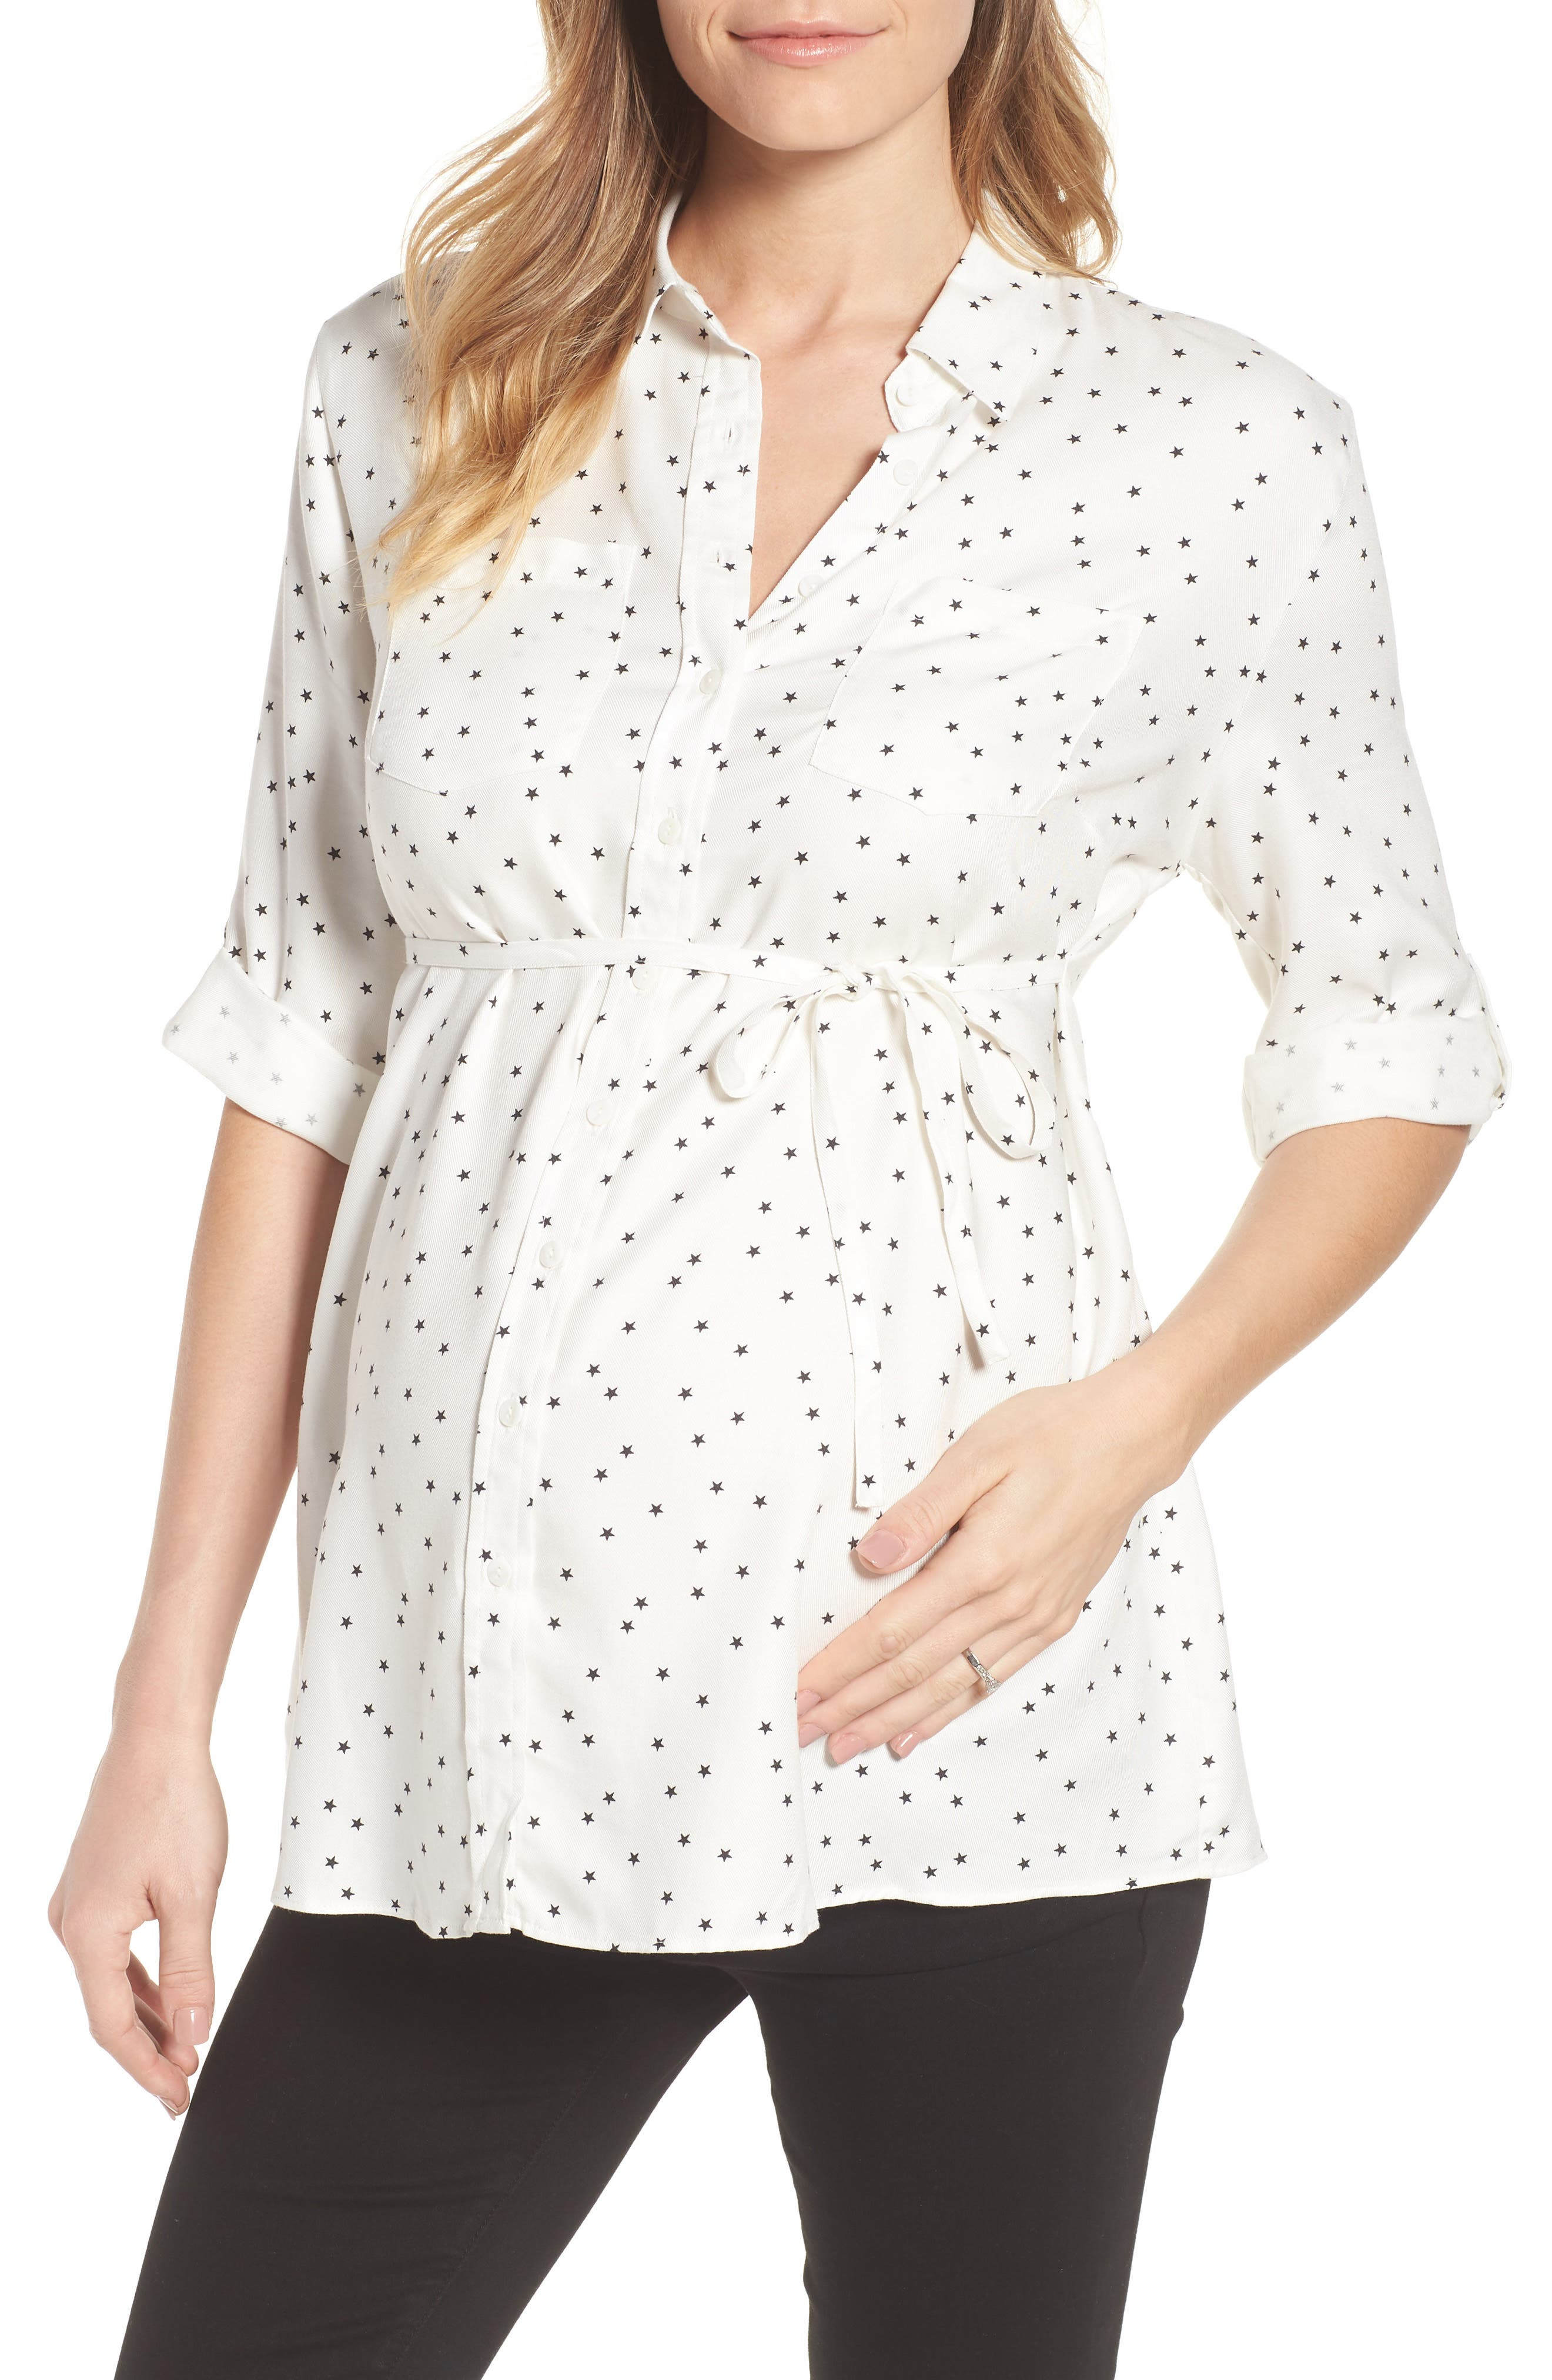 Selina Maternity Shirt,                             Main thumbnail 1, color,                             OFF WHITE STAR PRINT